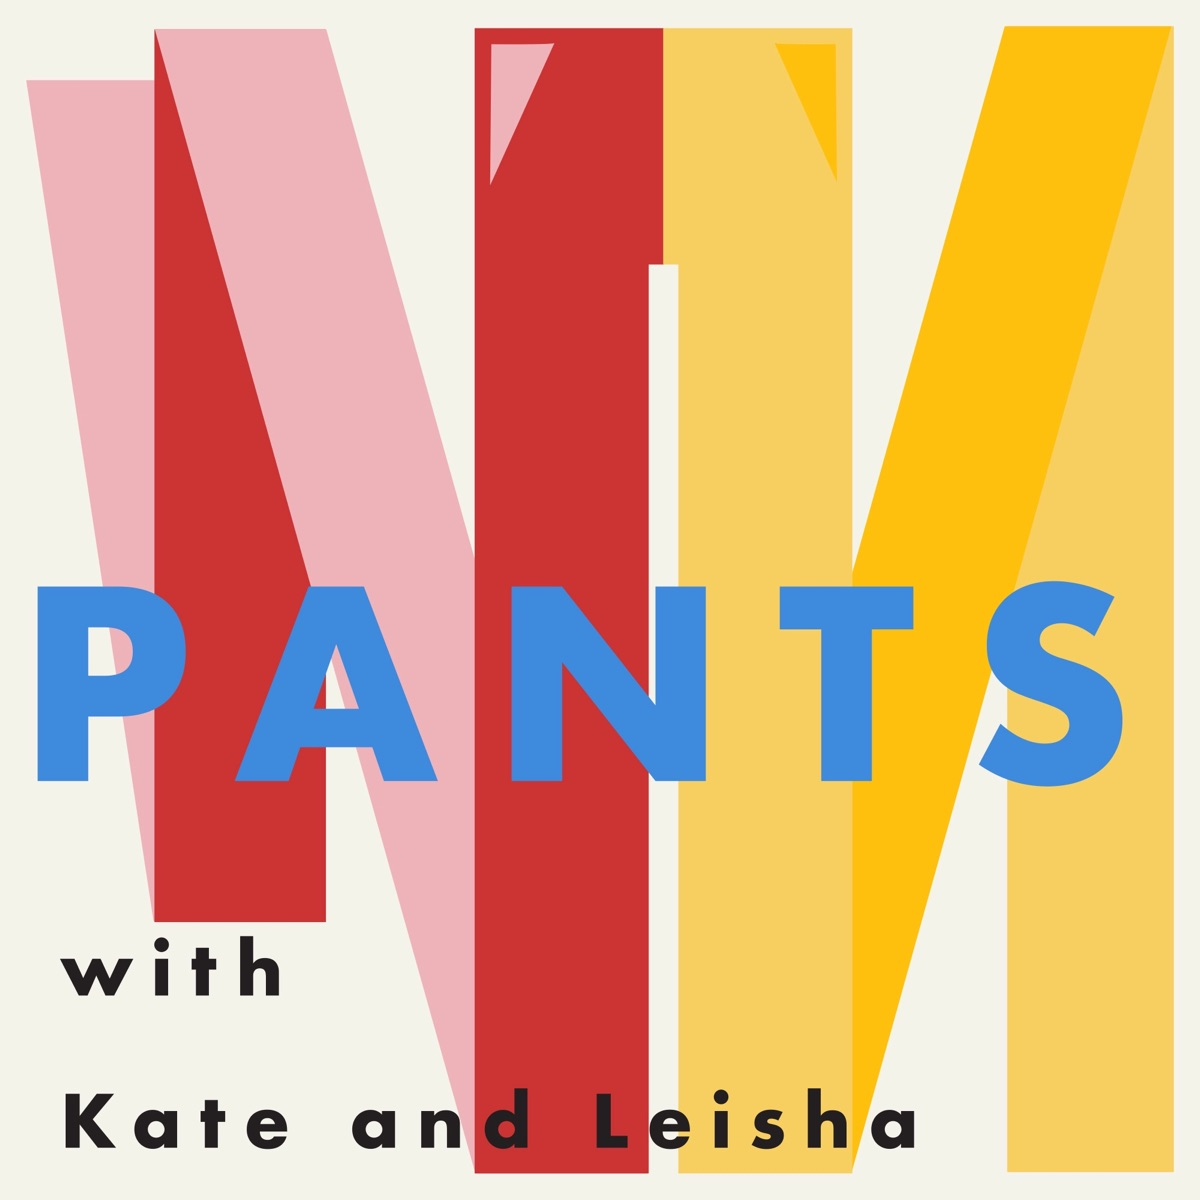 PANTS with Kate and Leisha